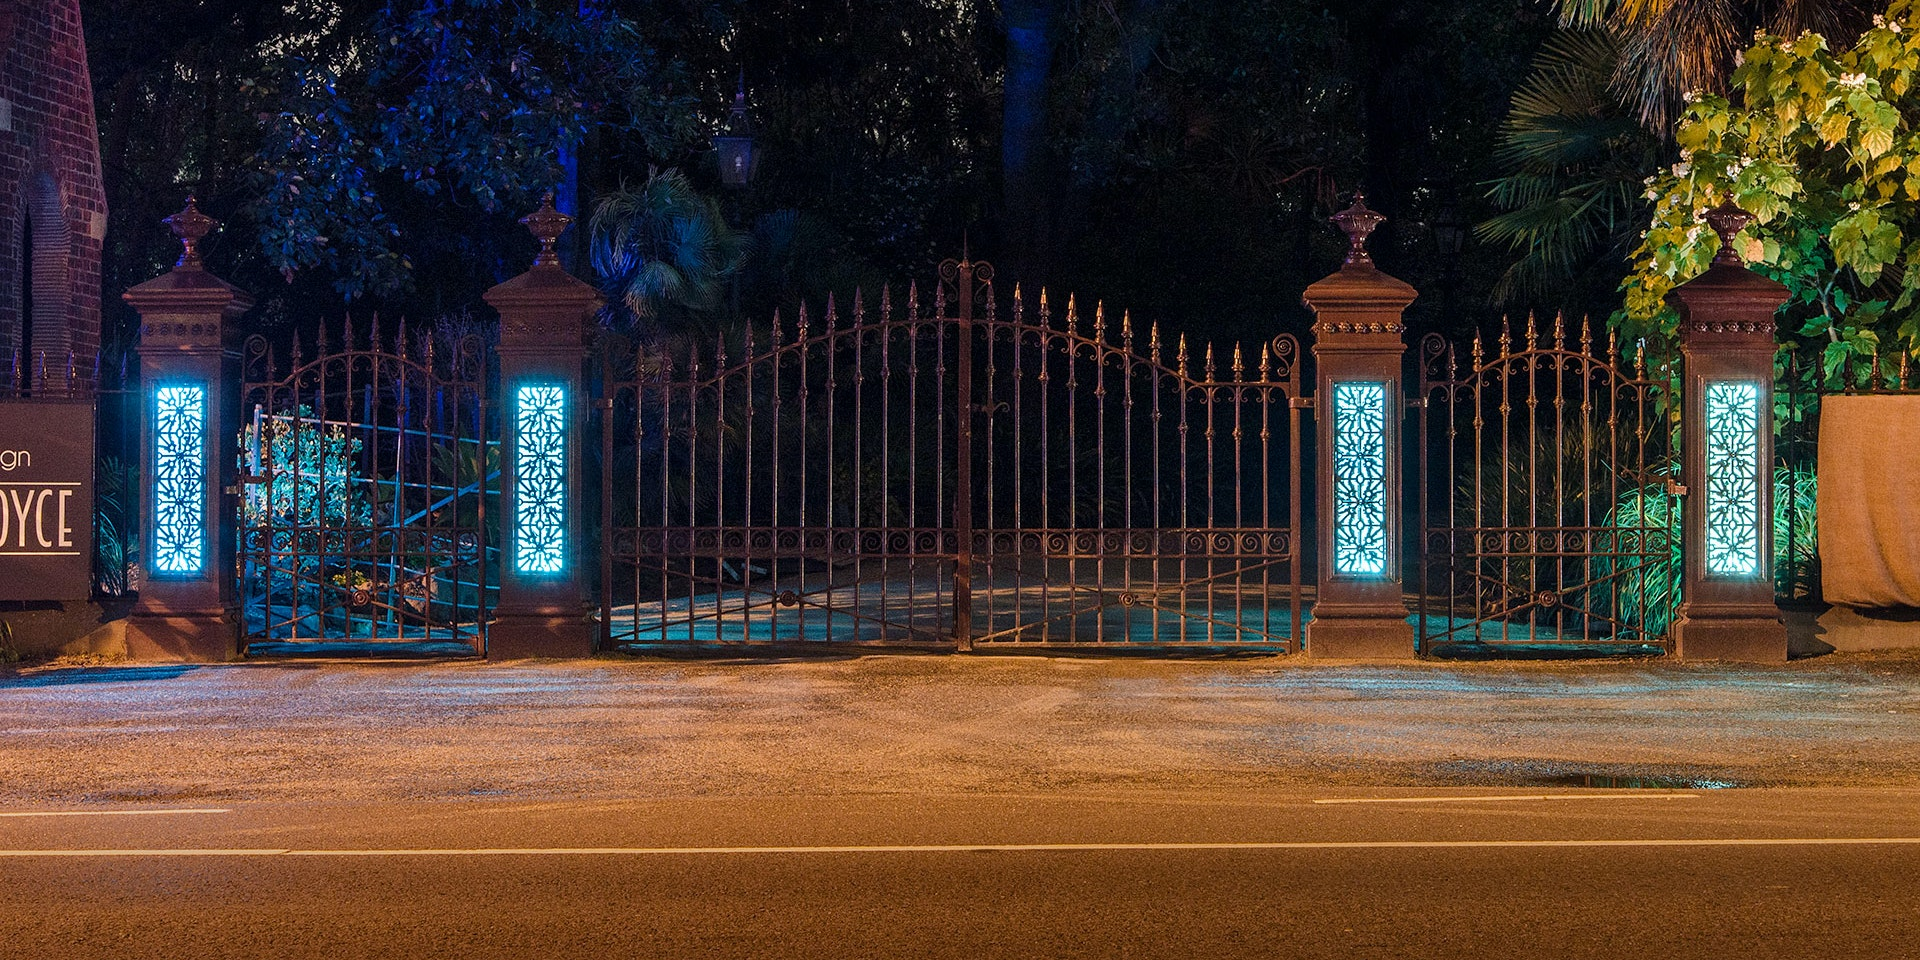 Latitude luminaires dot the Hawthorn Road entrance and Spectrum backlights 6 wrought iron pillars at the entrance.